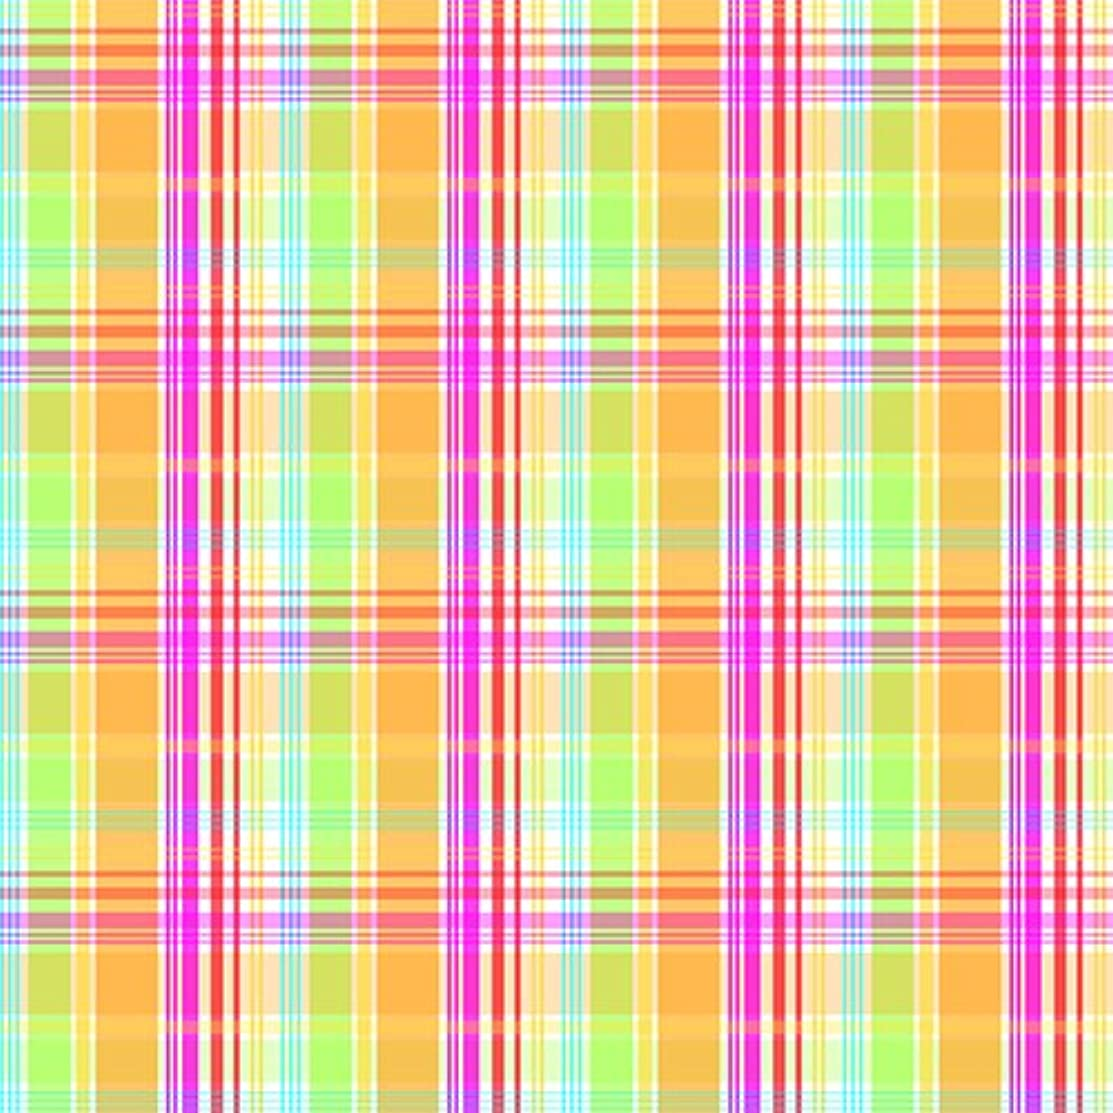 American Crafts 15 12 x 12 Inch Birthday Plaid Paper Pack by Die Cuts with a View, Piece